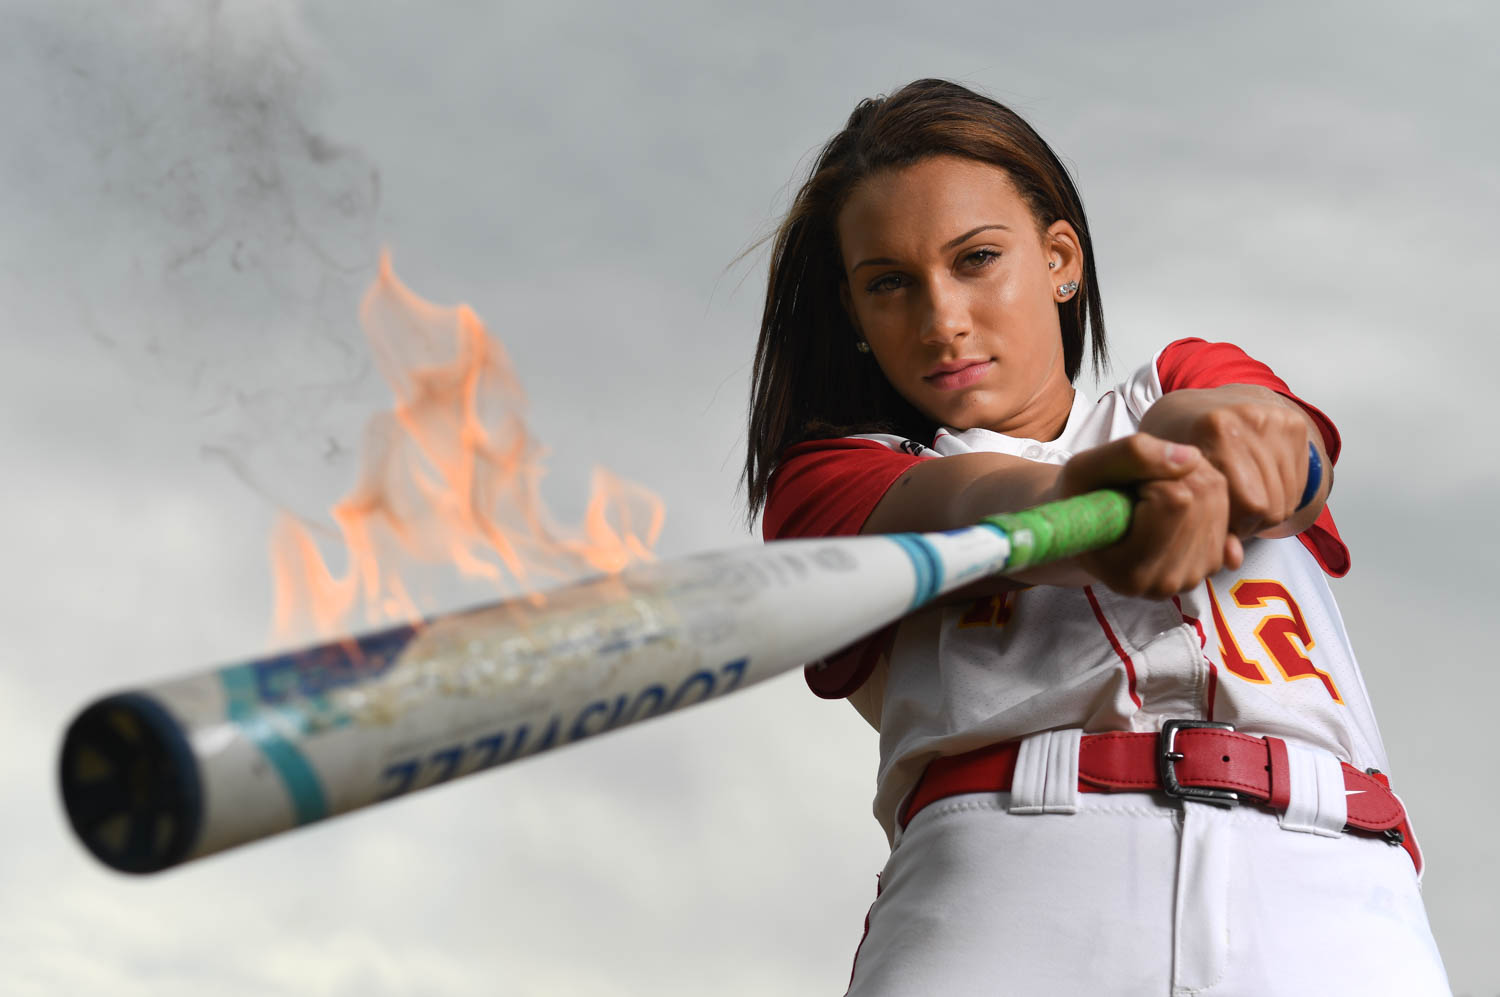 Rock Island's Lauryn Stegall is this week's Dispatch-Argus-QCOnline Pacesetter. She is on fire at the plate hitting better than .450 and leading the team in home runs. She hit a go-ahead two-run home run in Monday's 3-0 win over Minooka in the Normal (ISU) Super-Sectional.  (Todd Mizener - Dispatch/Argus)